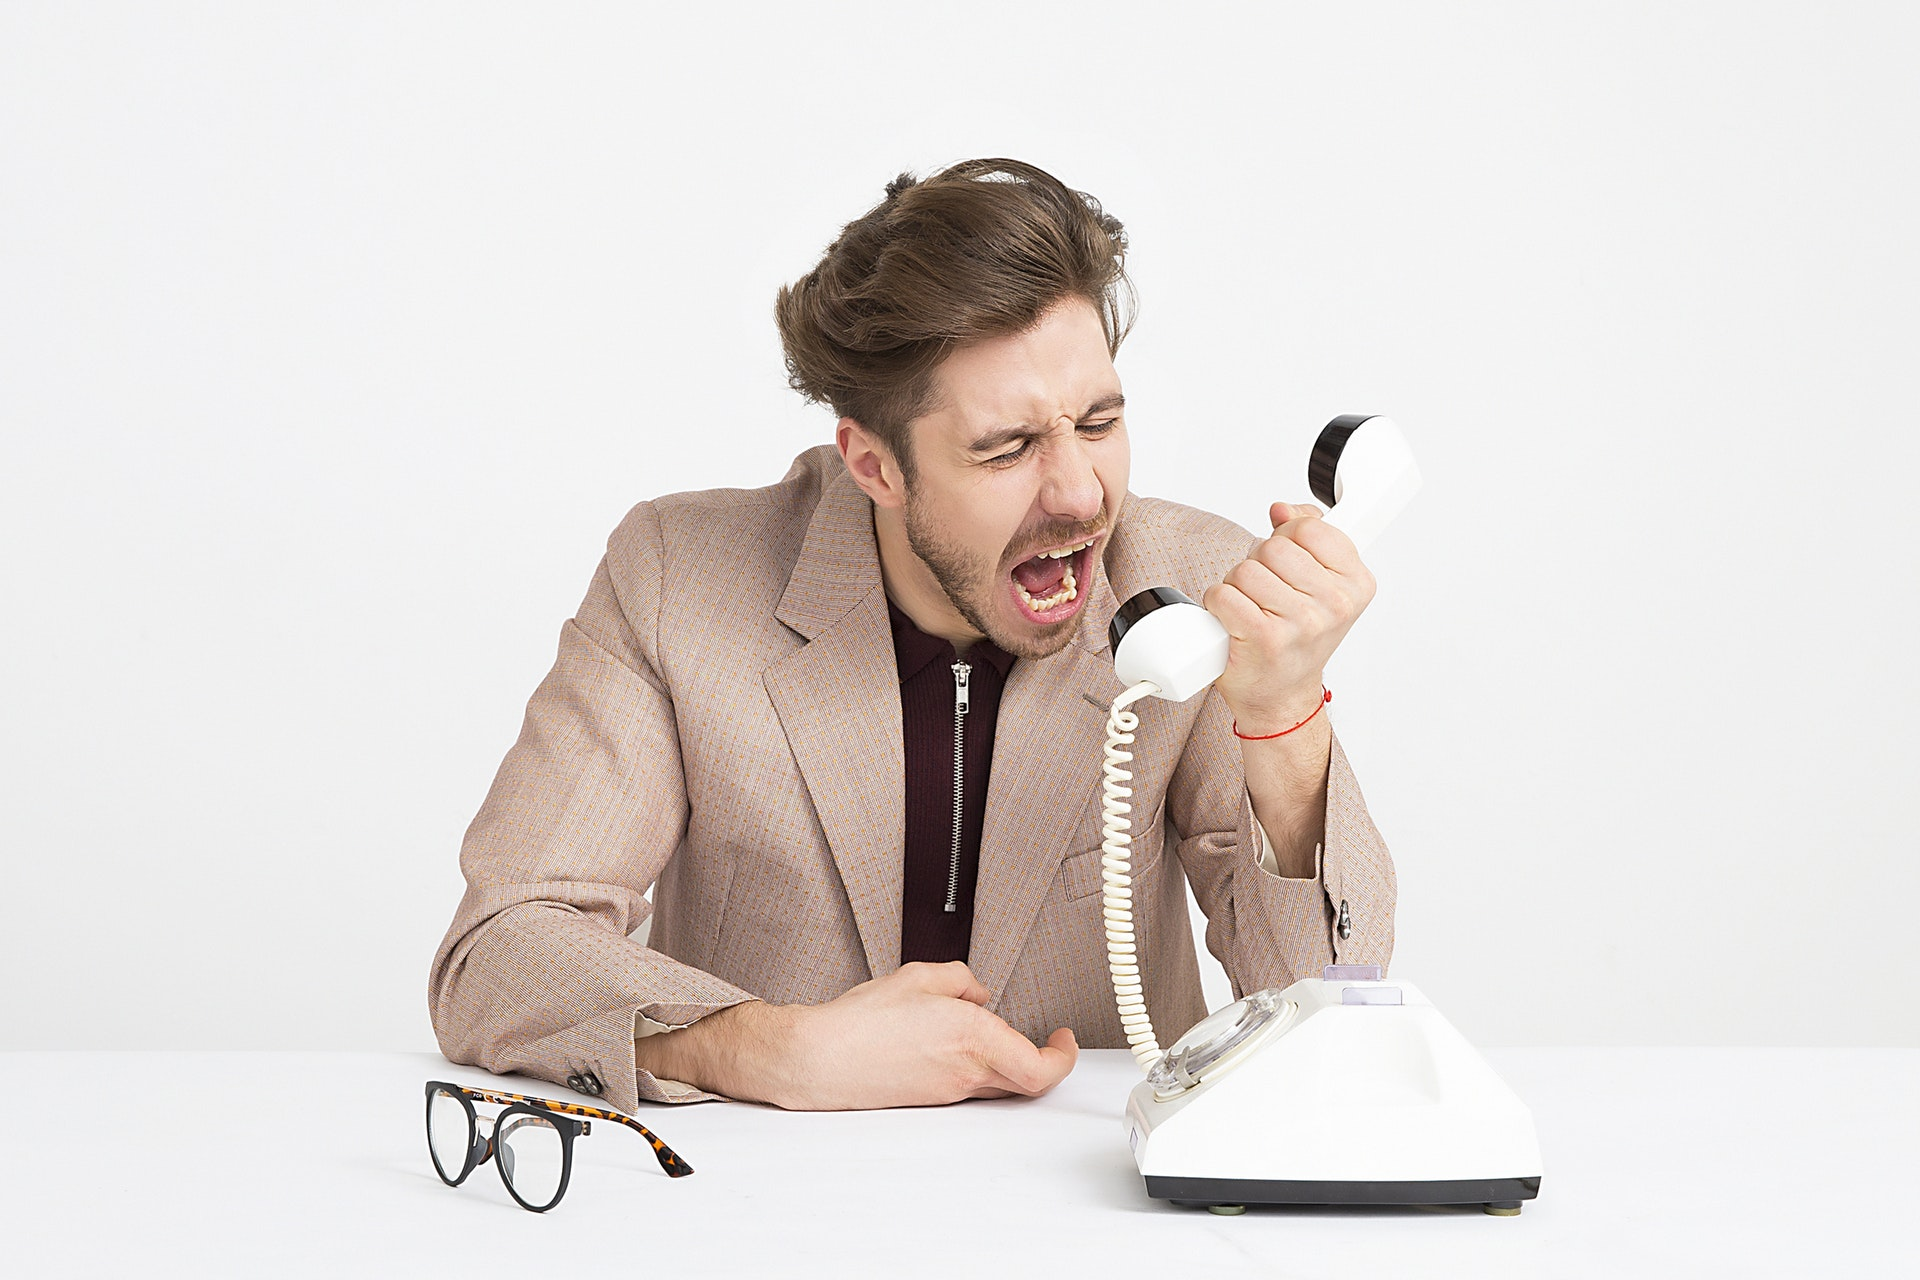 Angry Adult yelling at phone